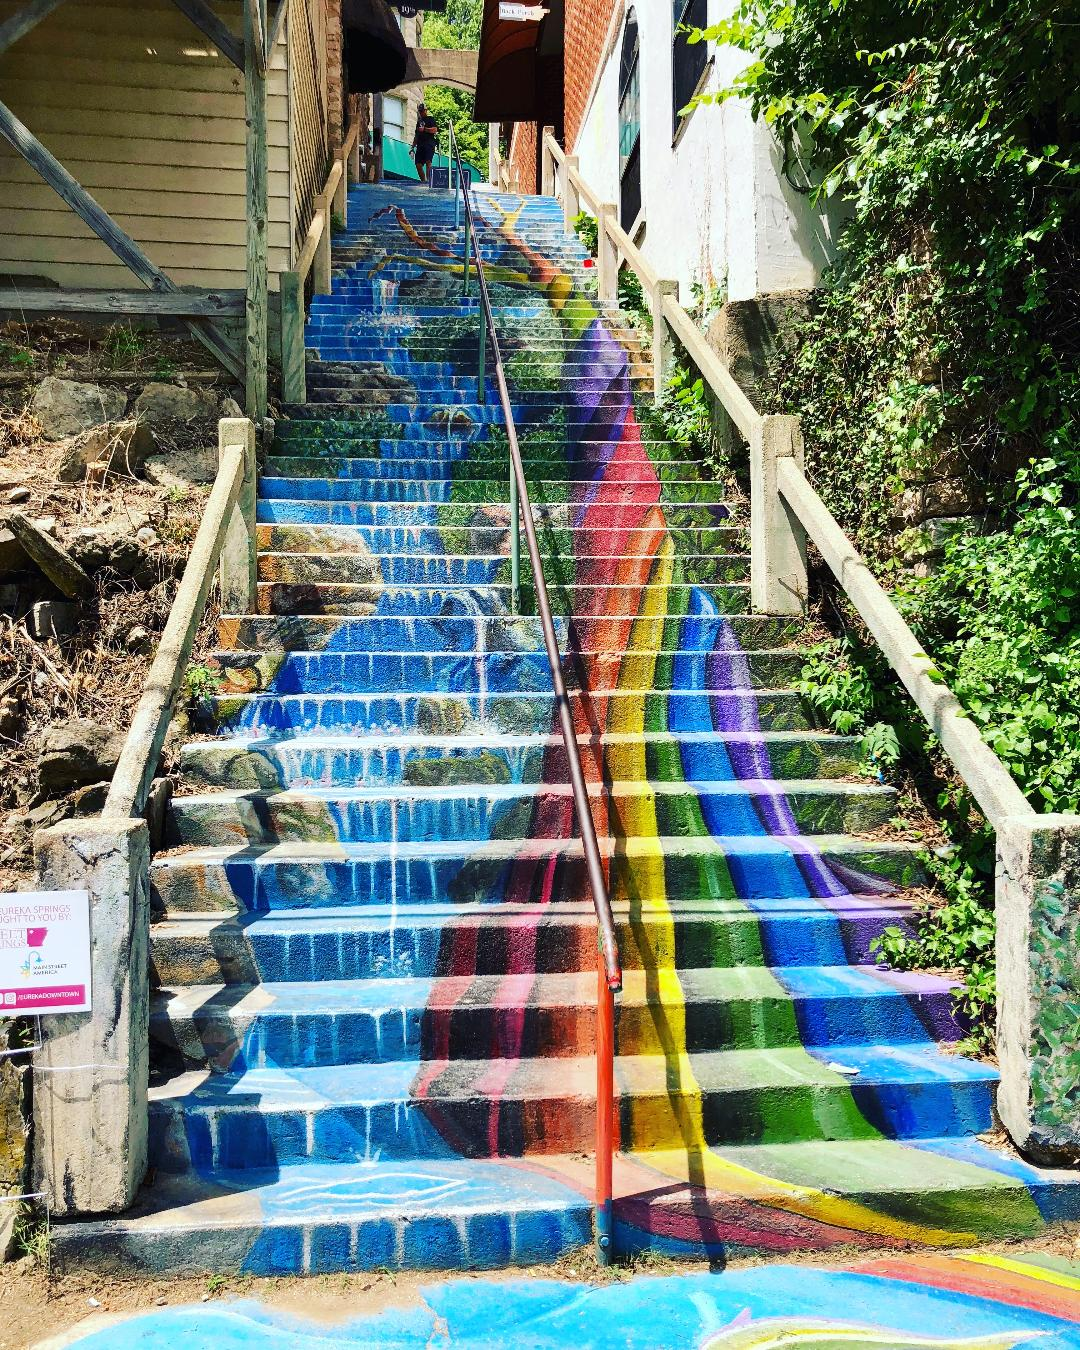 The Cash and Boardman Mural or the Rainbow Staircase as some people call it is a neat site to see. It is tucked away on a backstreet in the boutique shop section of downtown.